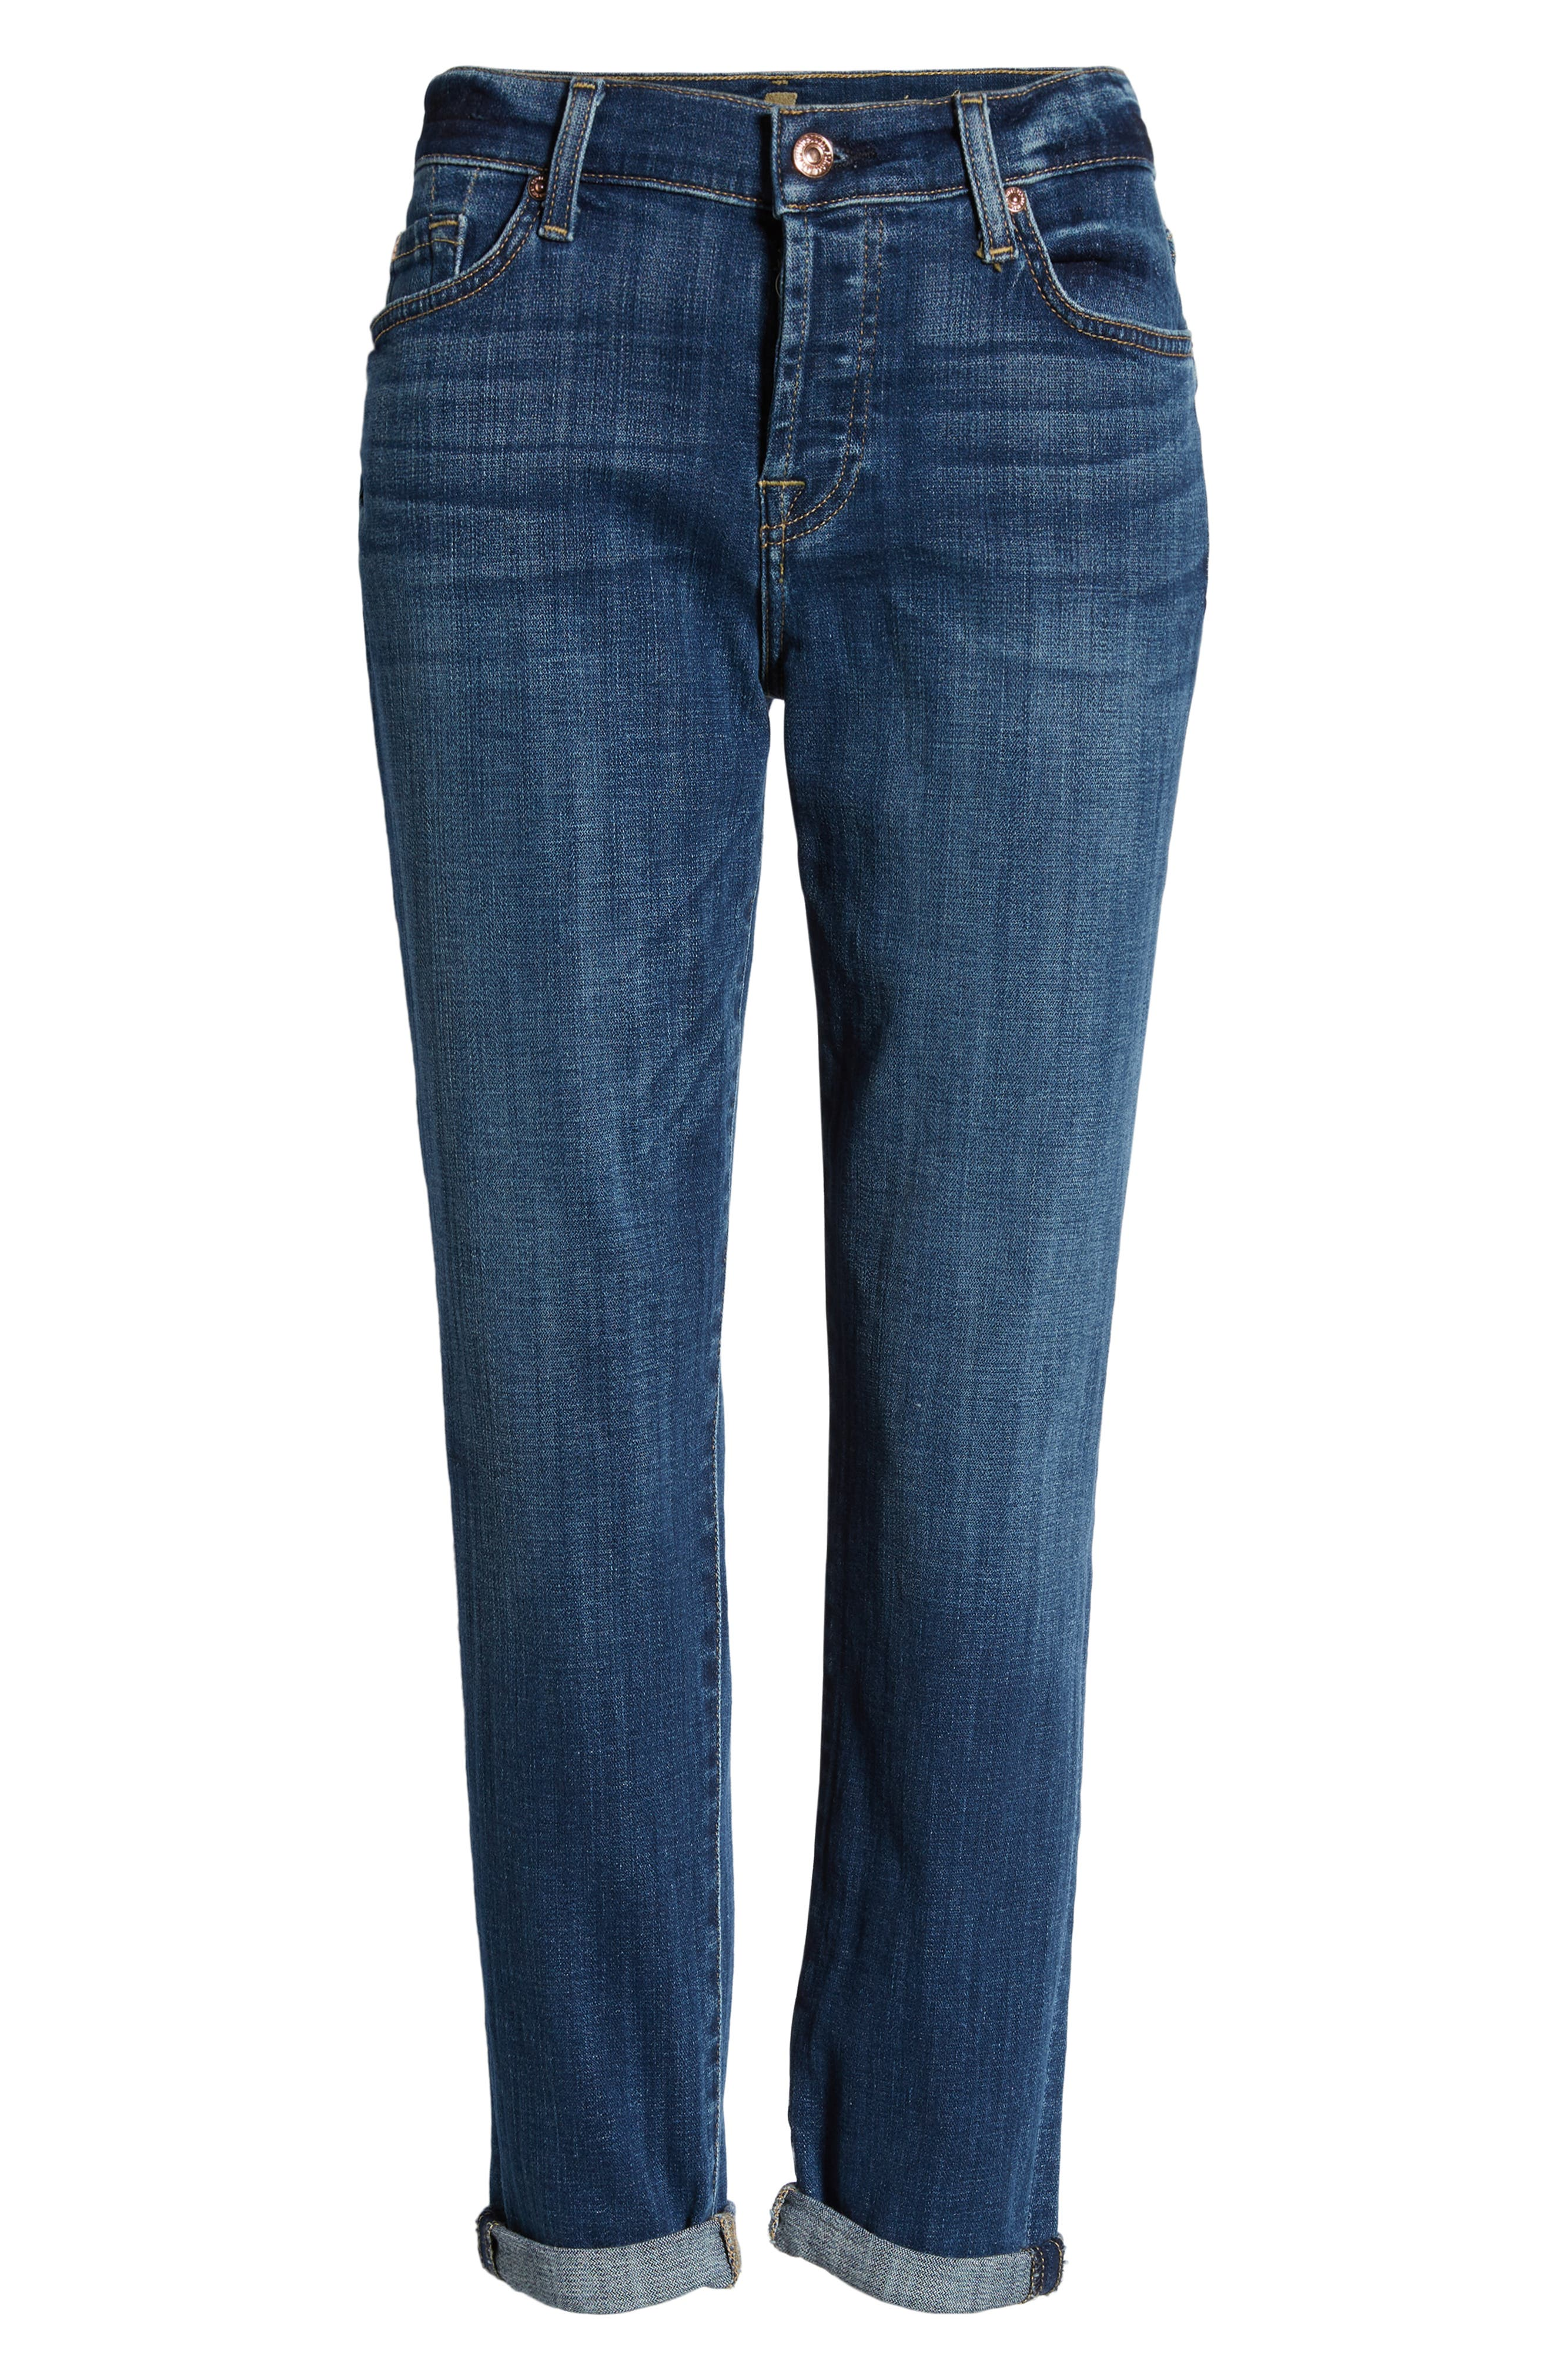 7 FOR ALL MANKIND<SUP>®</SUP>, Josefina Ankle Boyfriend Jeans, Alternate thumbnail 7, color, BROKEN TWILL VANITY CLEAN